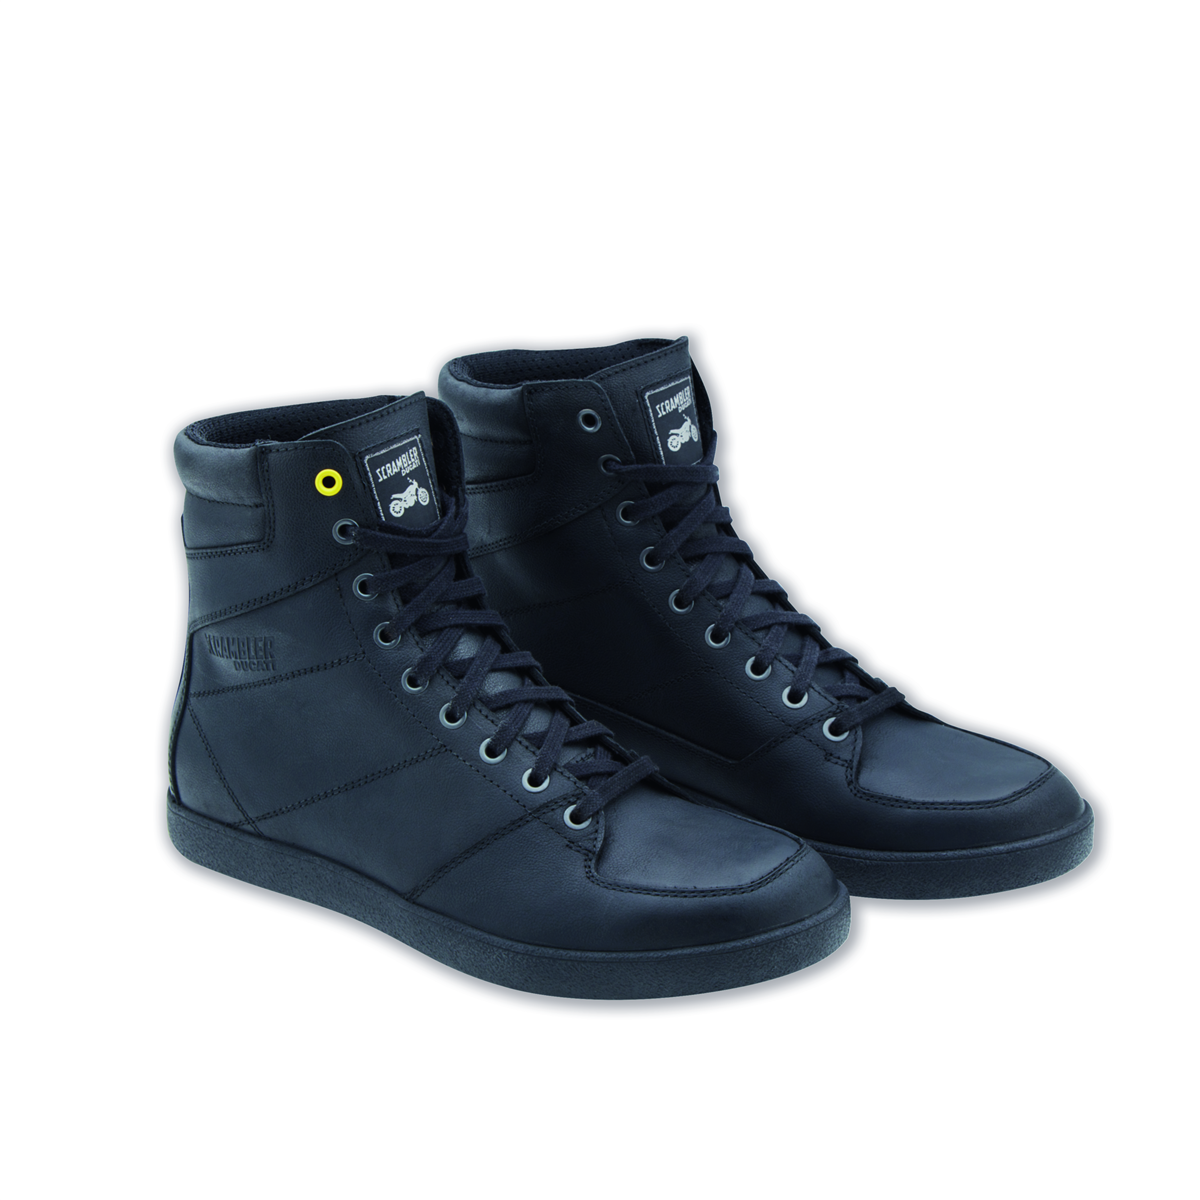 Black Rider - Technical short boots